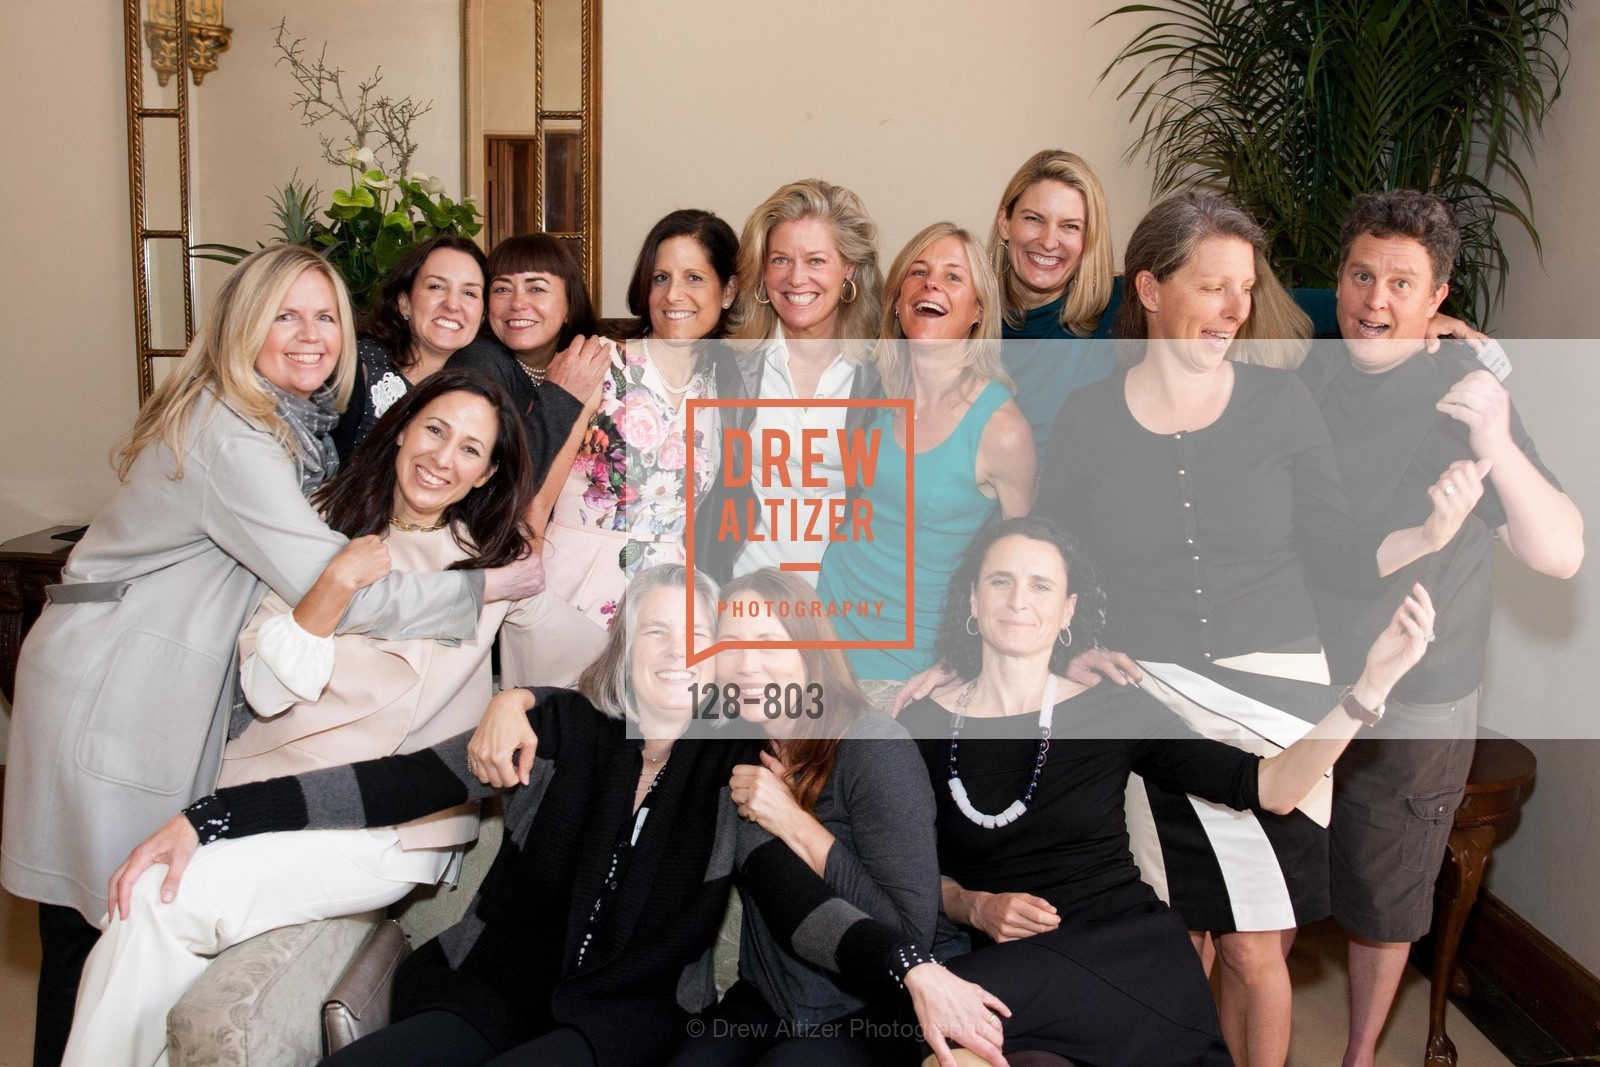 Heather Fullerton, Lindsey Dunkel, Margaret Grohne, Lisa Bransten, Mindy Henderson, Lila Schilling, Liza Schilling, BURKE'S Alumnae Luncheon, US, April 25th, 2015,Drew Altizer, Drew Altizer Photography, full-service agency, private events, San Francisco photographer, photographer california